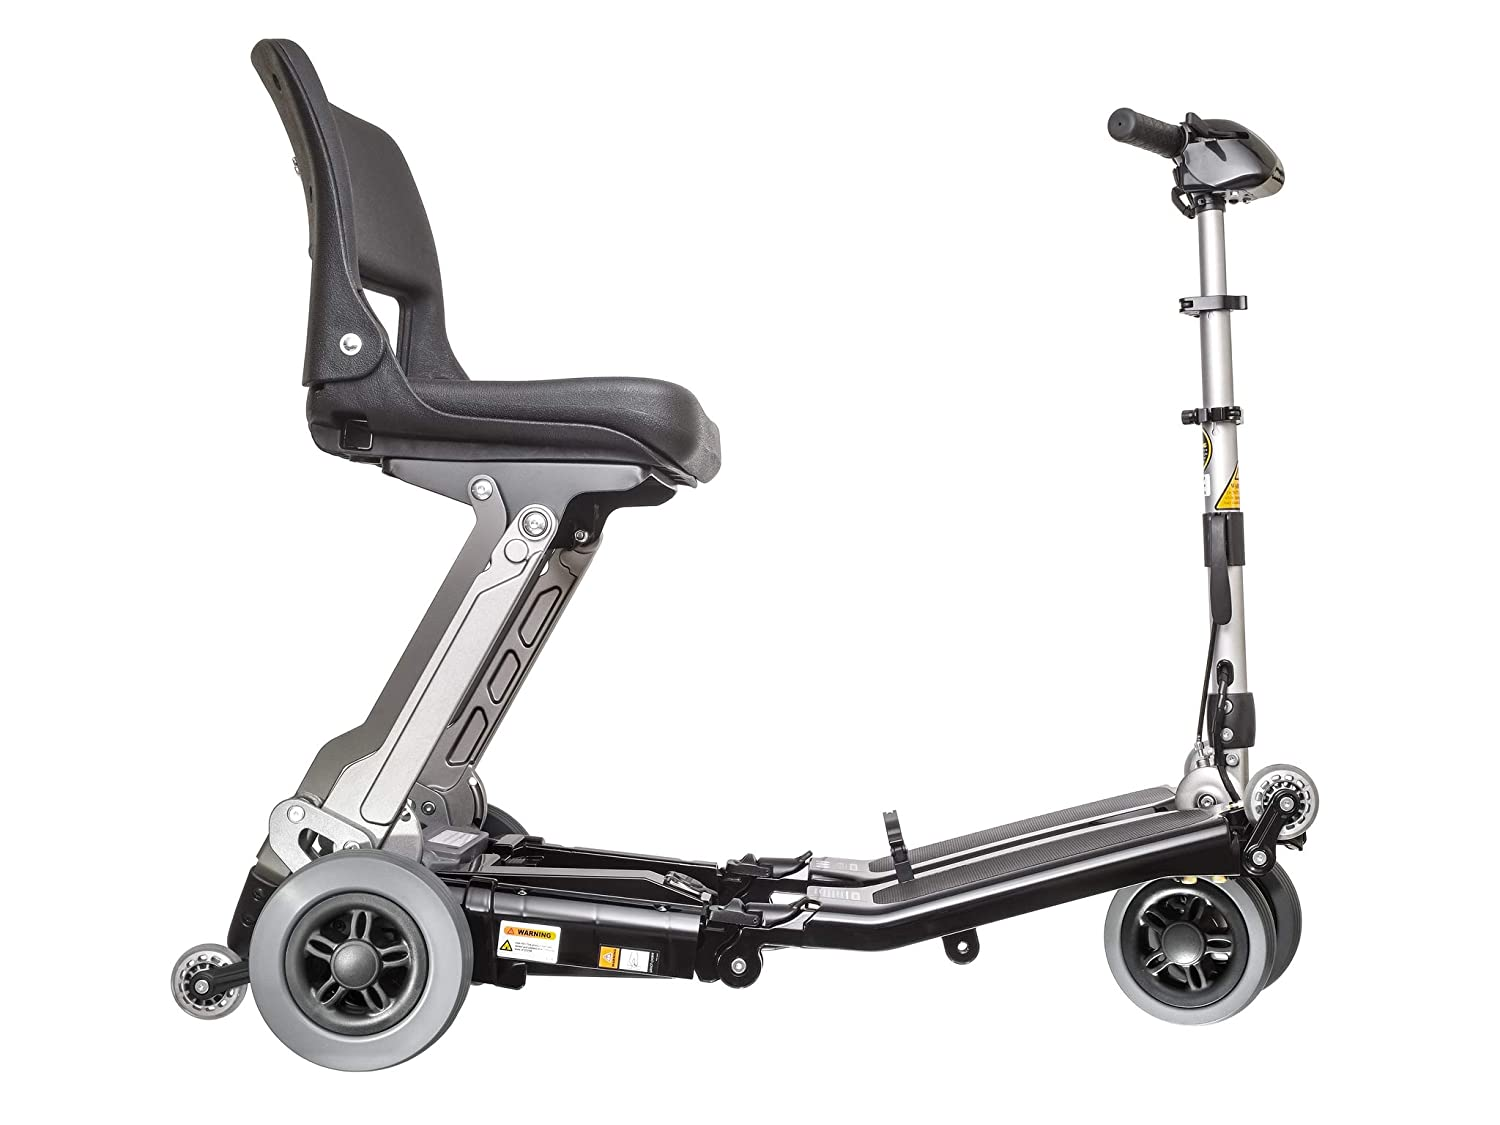 Amazon.com: Luggie Standard plegable scooter, FR168-4IT ...